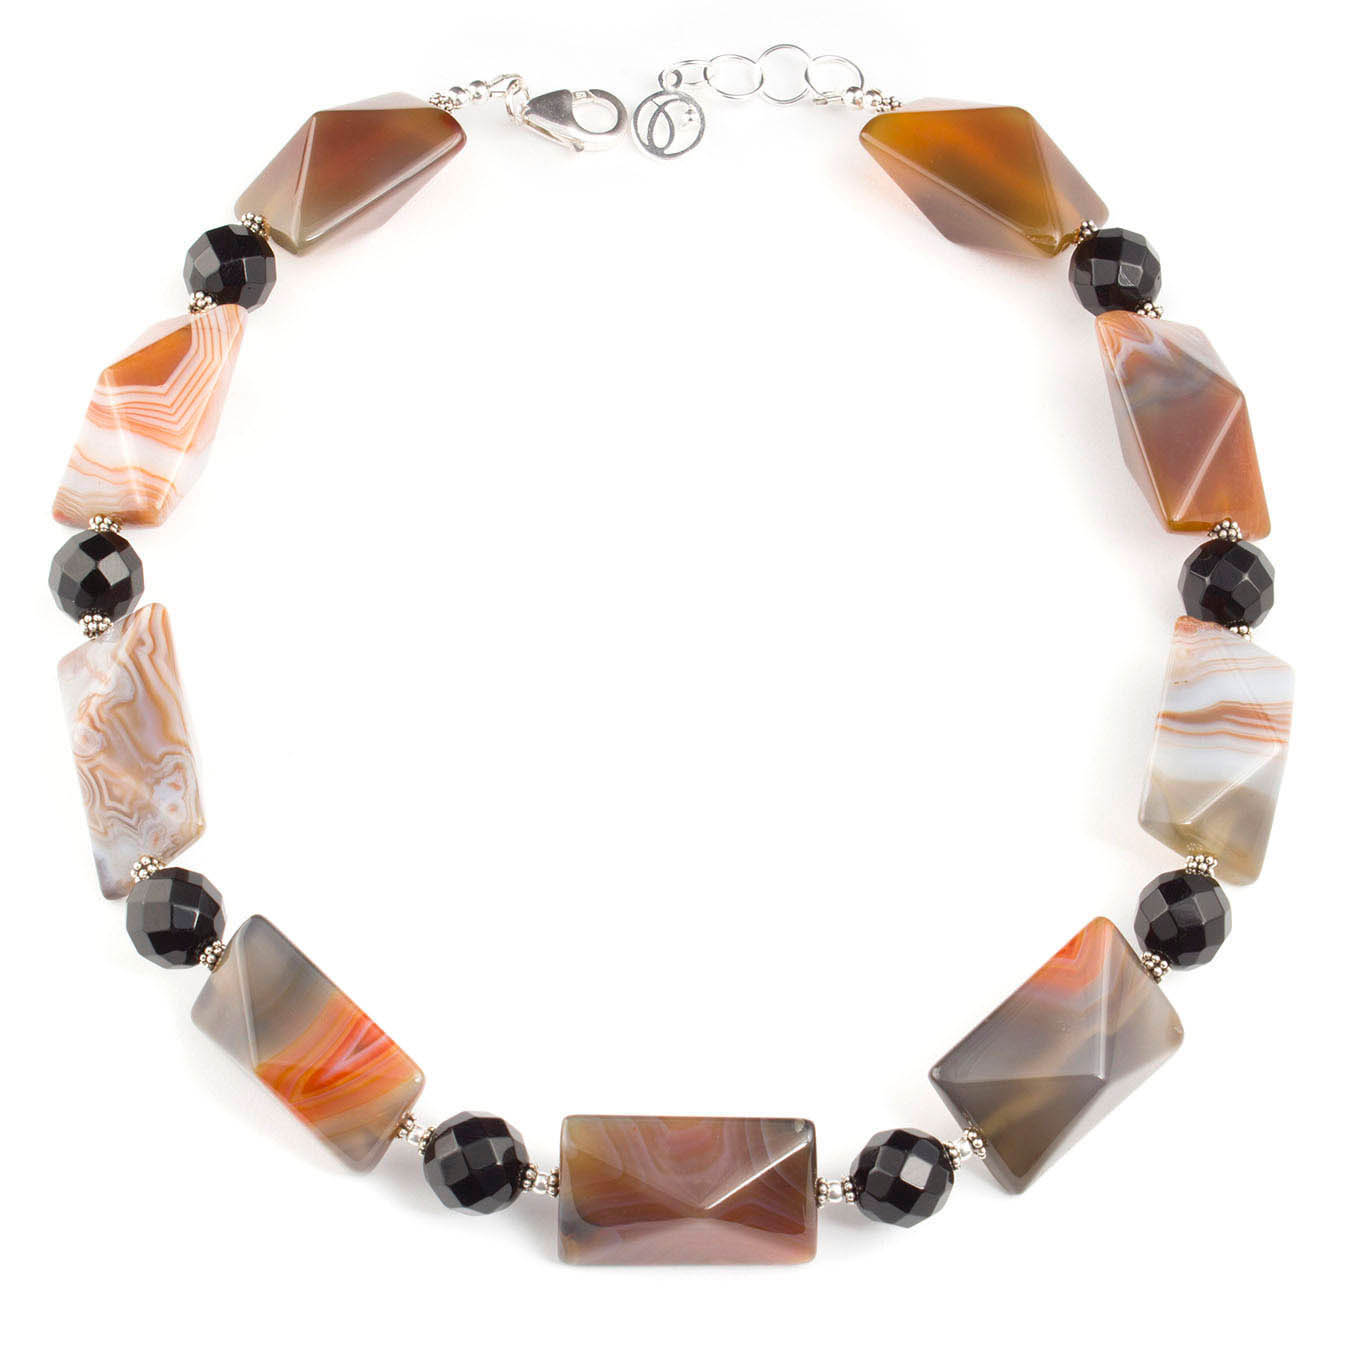 Handcrafted bold bead jewelry made of chunky botswana agate and silver